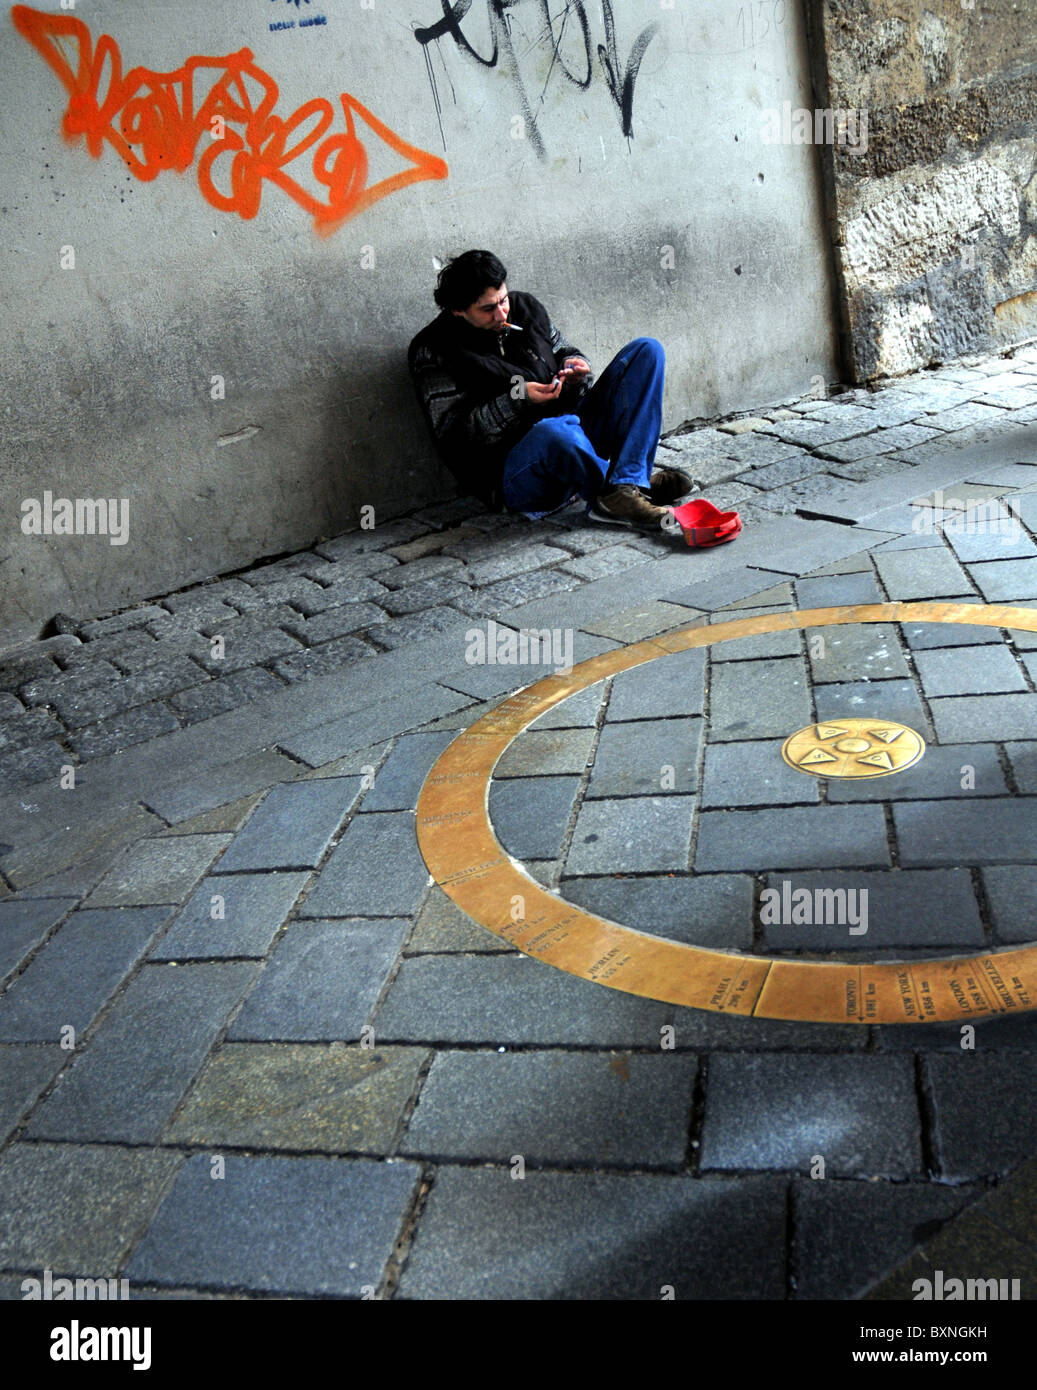 Man begging in the old city area, Bratislava, Slovakia, Europe - Stock Image